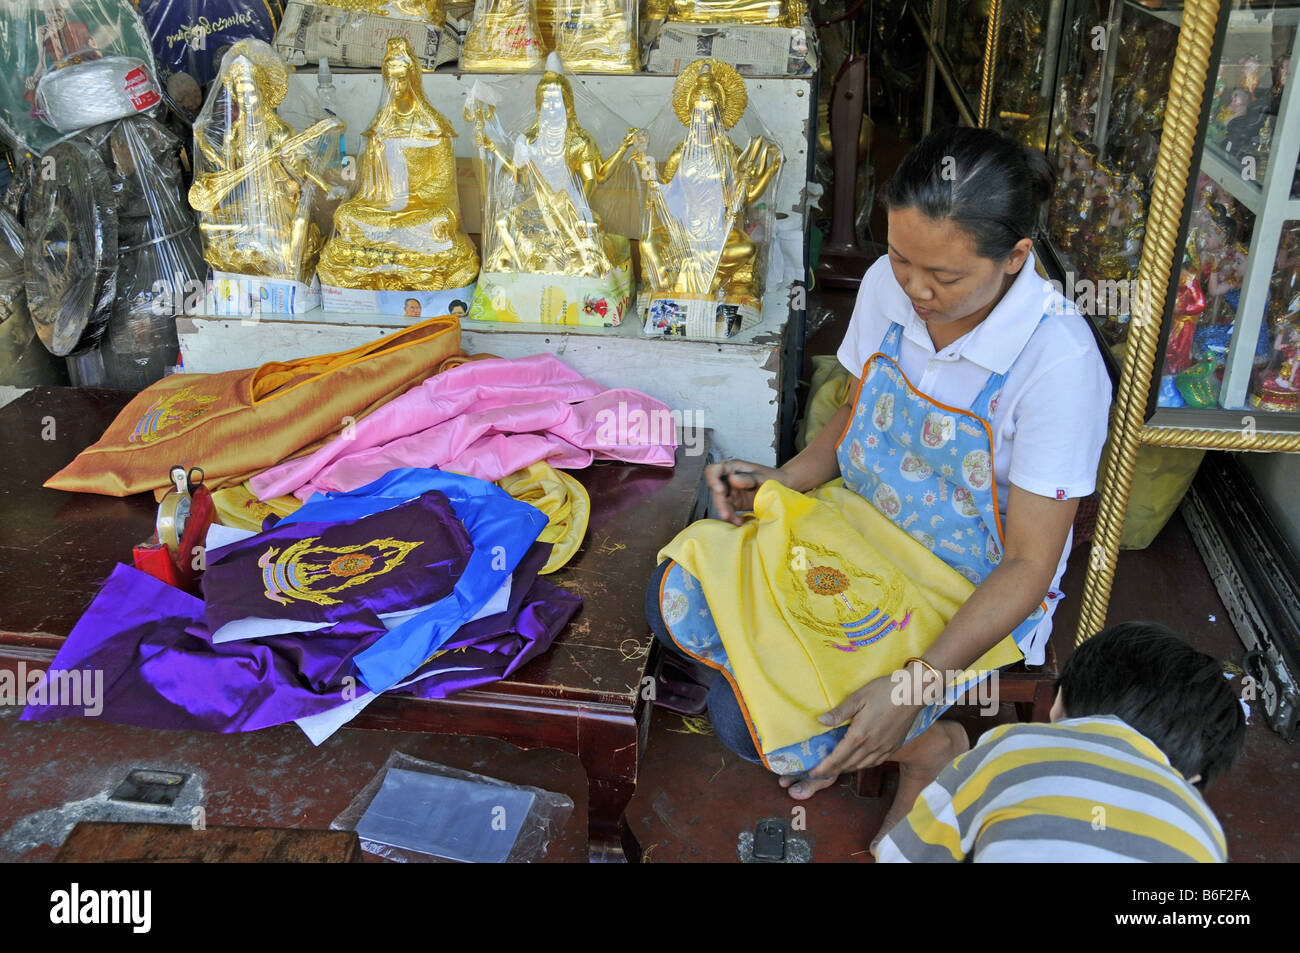 Buddha statue and devotional objects offering for sale in a store, Thailand, Bangkok - Stock Image